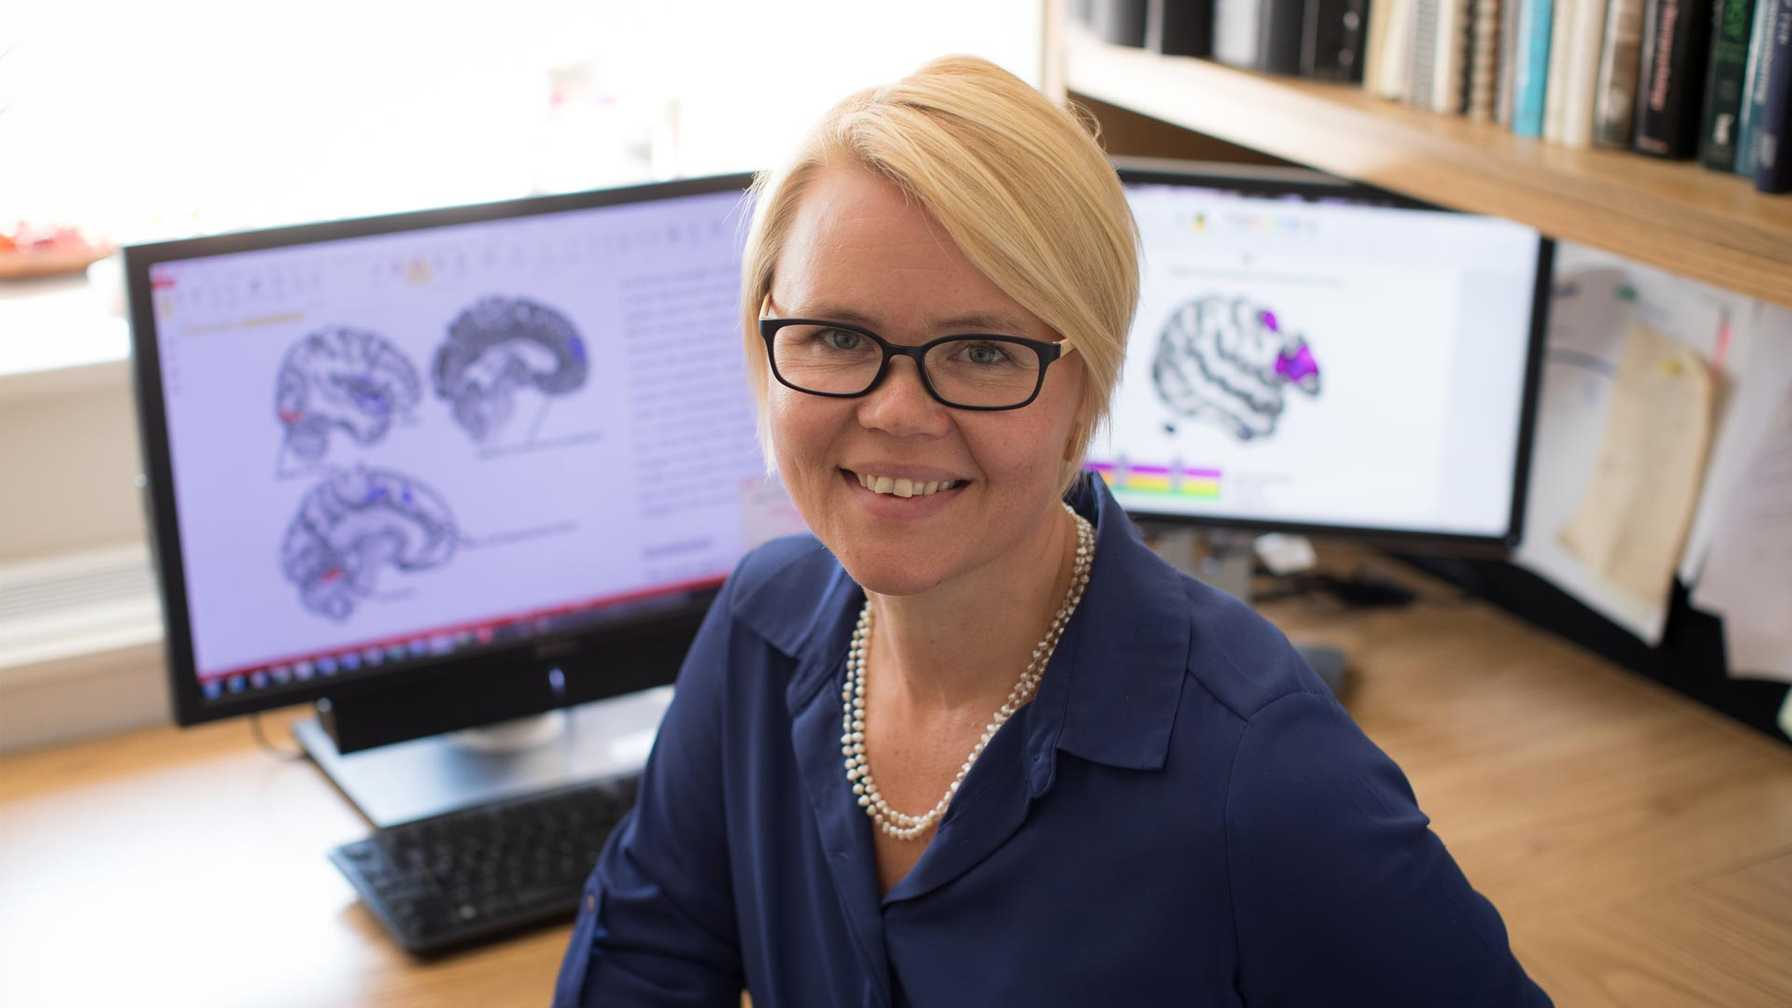 Einstein Researcher Awarded $3.5 Million Grant to Study Brain Changes During Aging